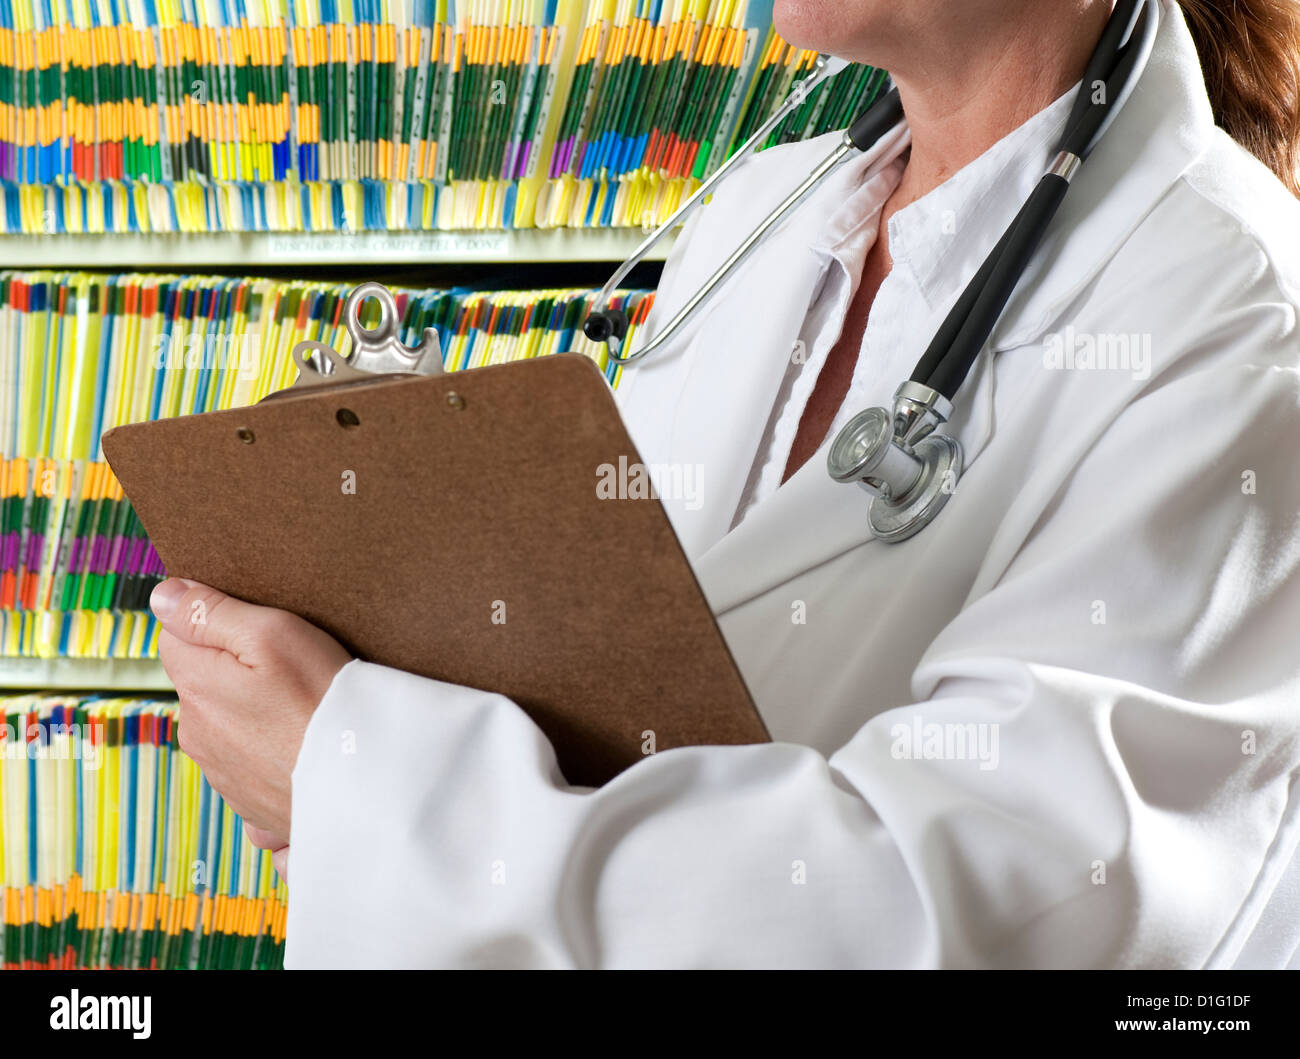 woman doctor with clipboard in medical records room - Stock Image